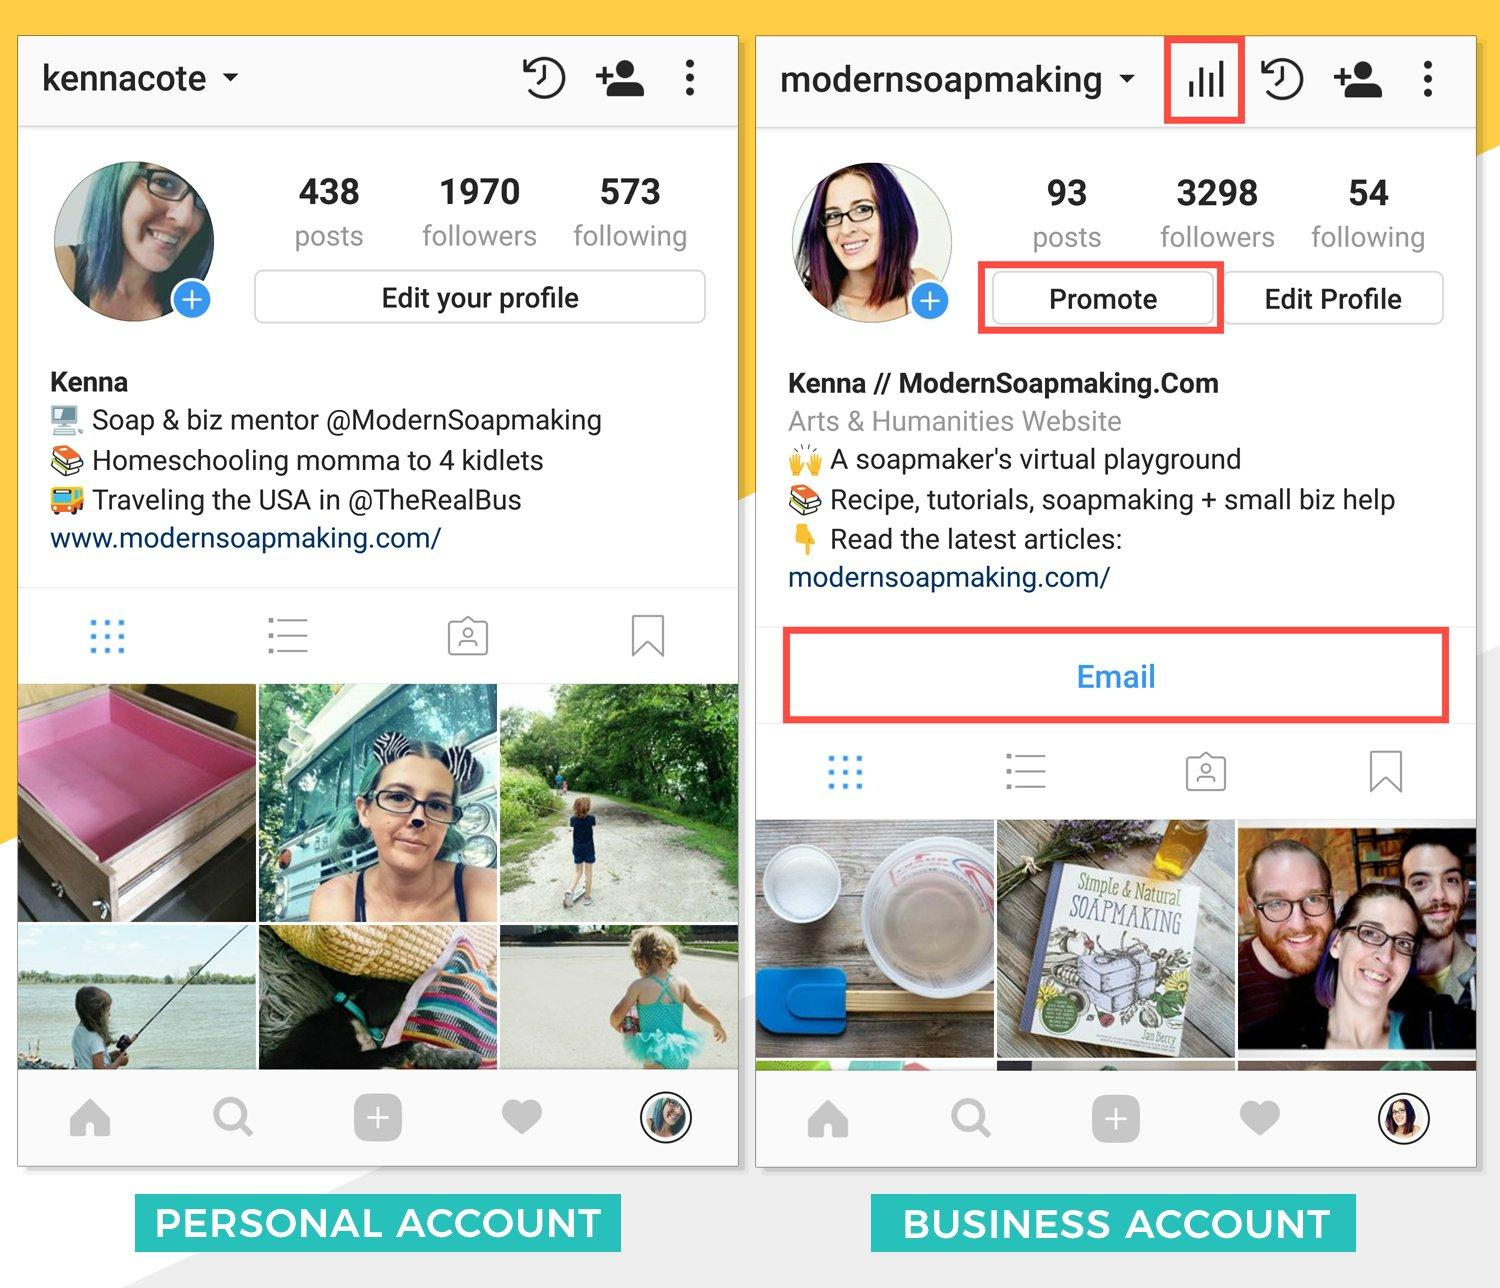 Top 10 Benefits of Instagram for Business - LYFE Marketing d77df324f15